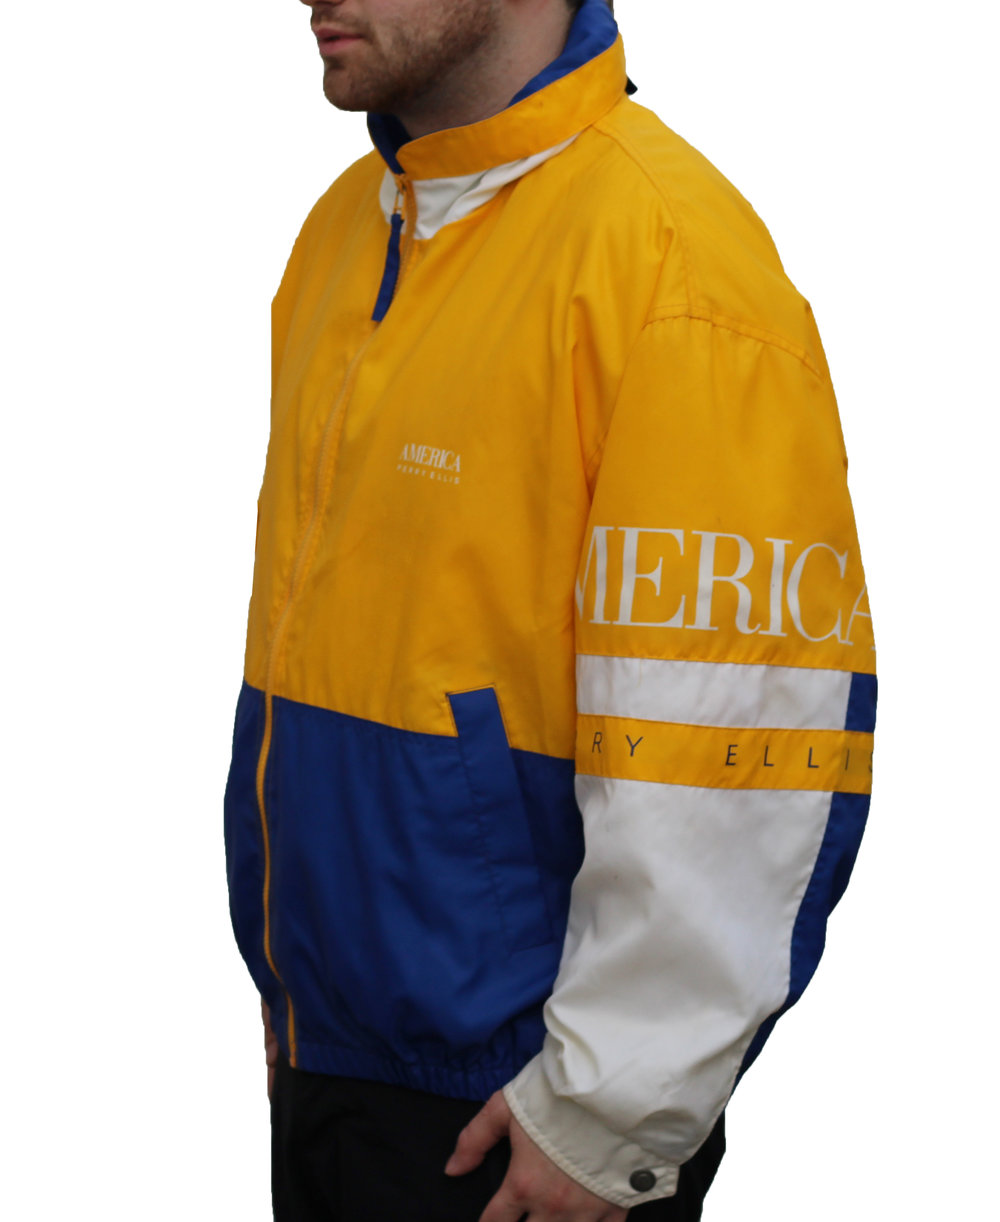 7933e9859d Vintage Perry Ellis America Yellow   Blue Windbreaker (Size L) — Roots